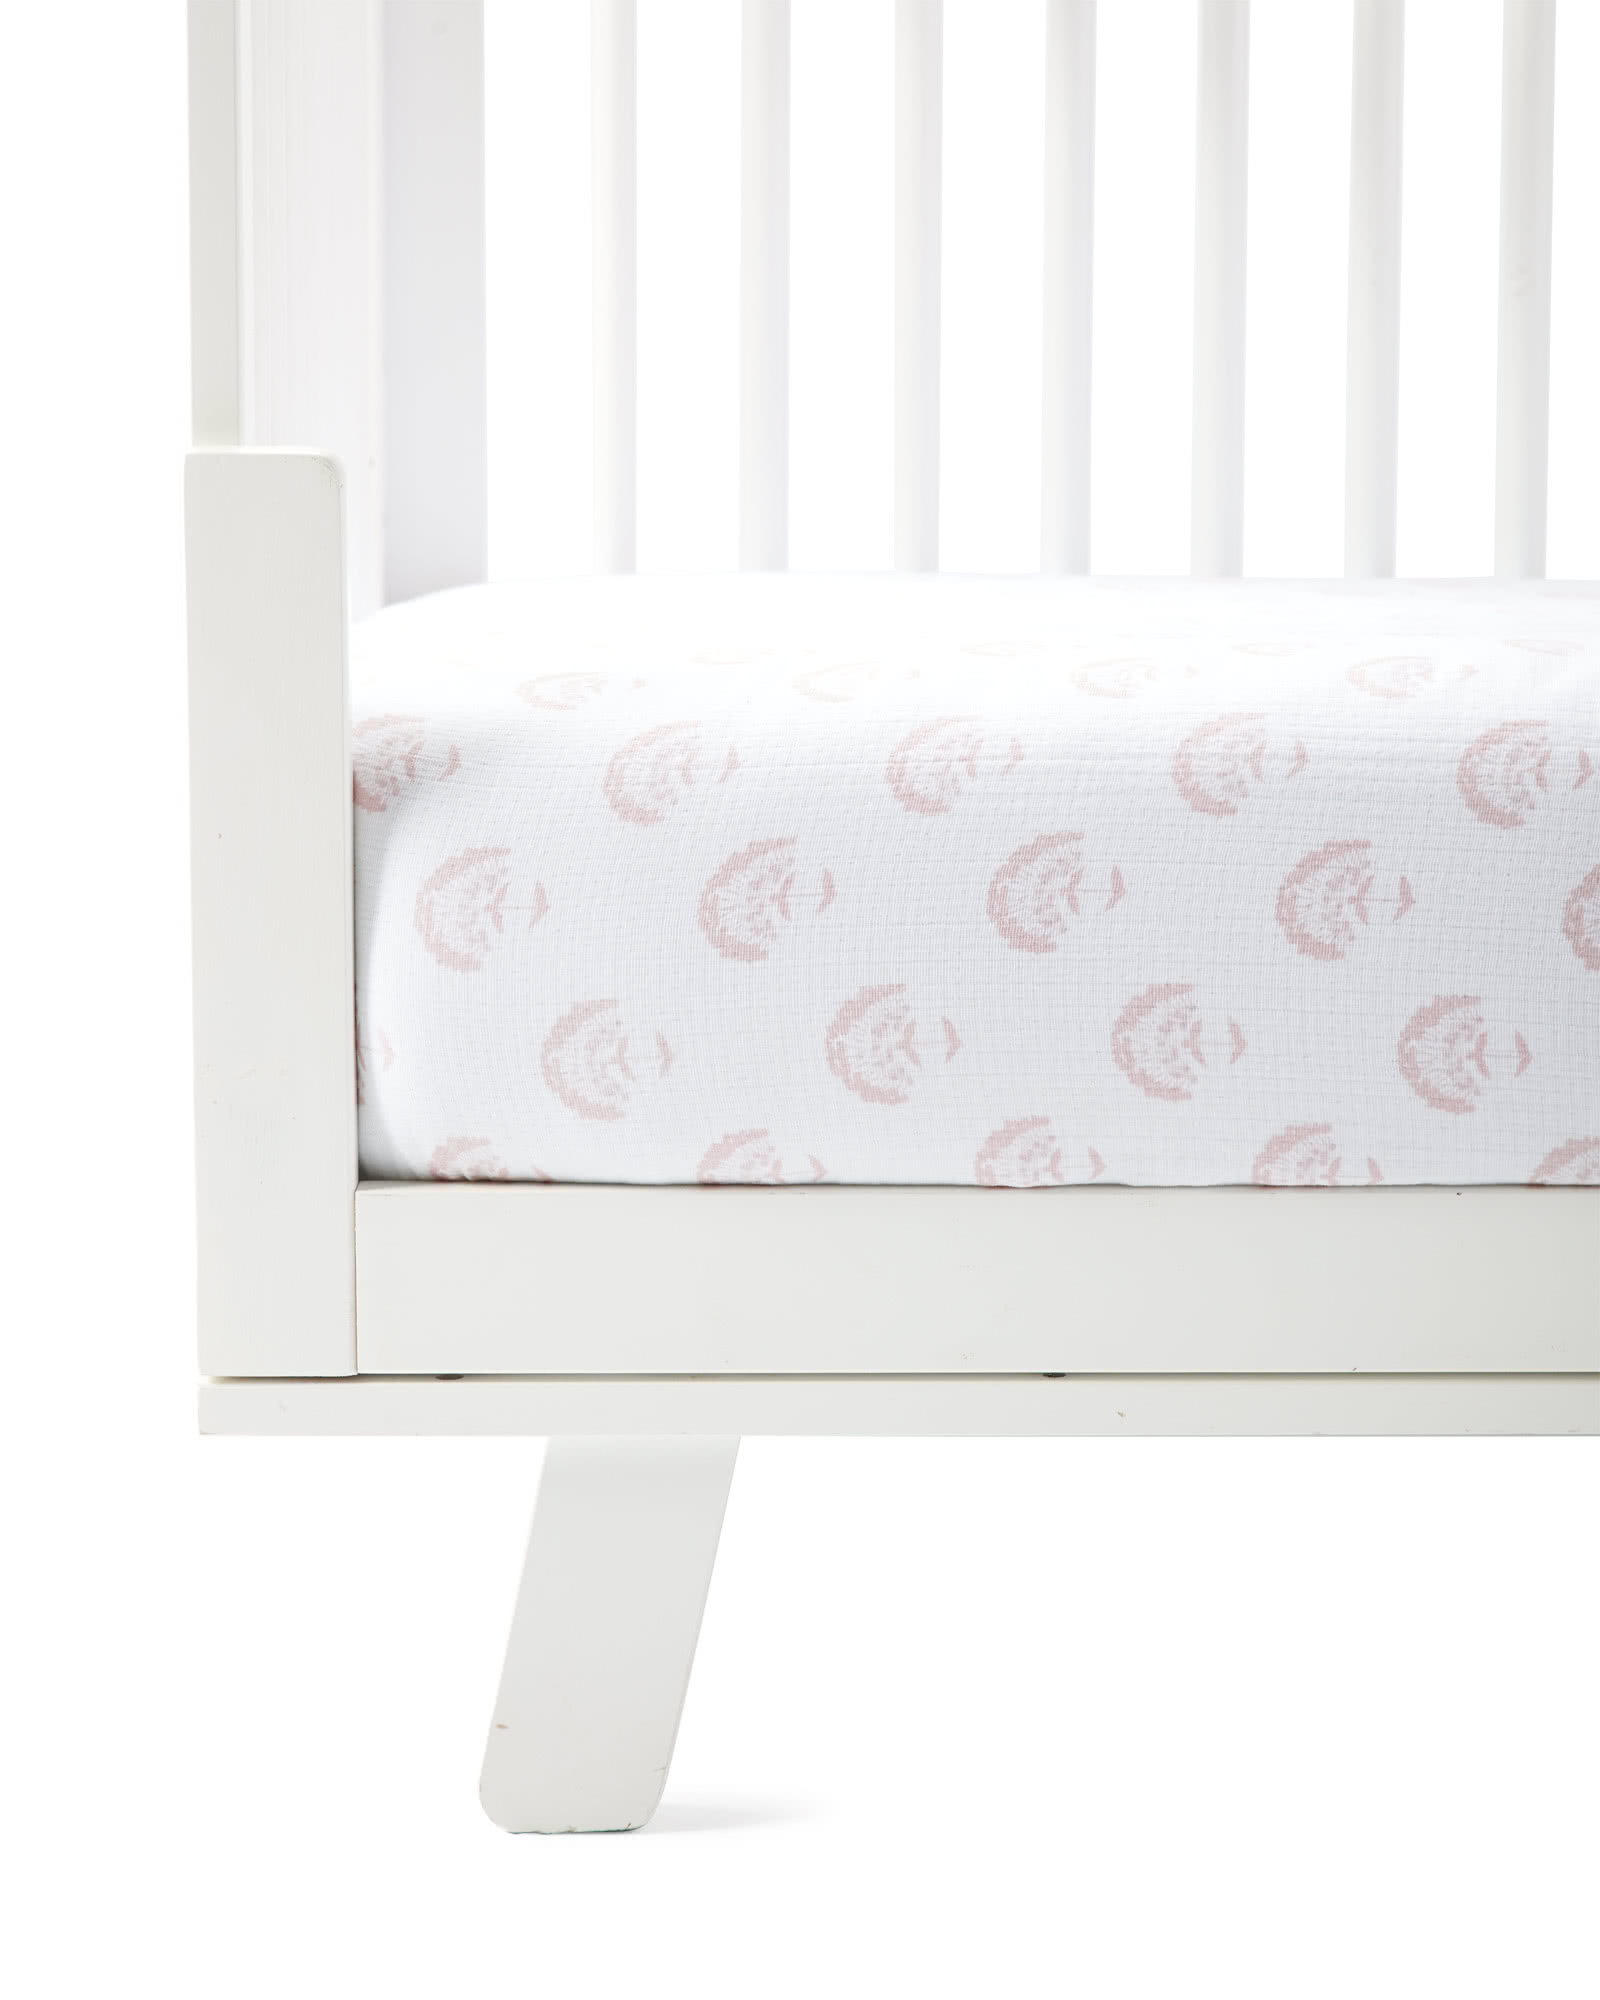 Astoria Crib Sheet, Pink Sand